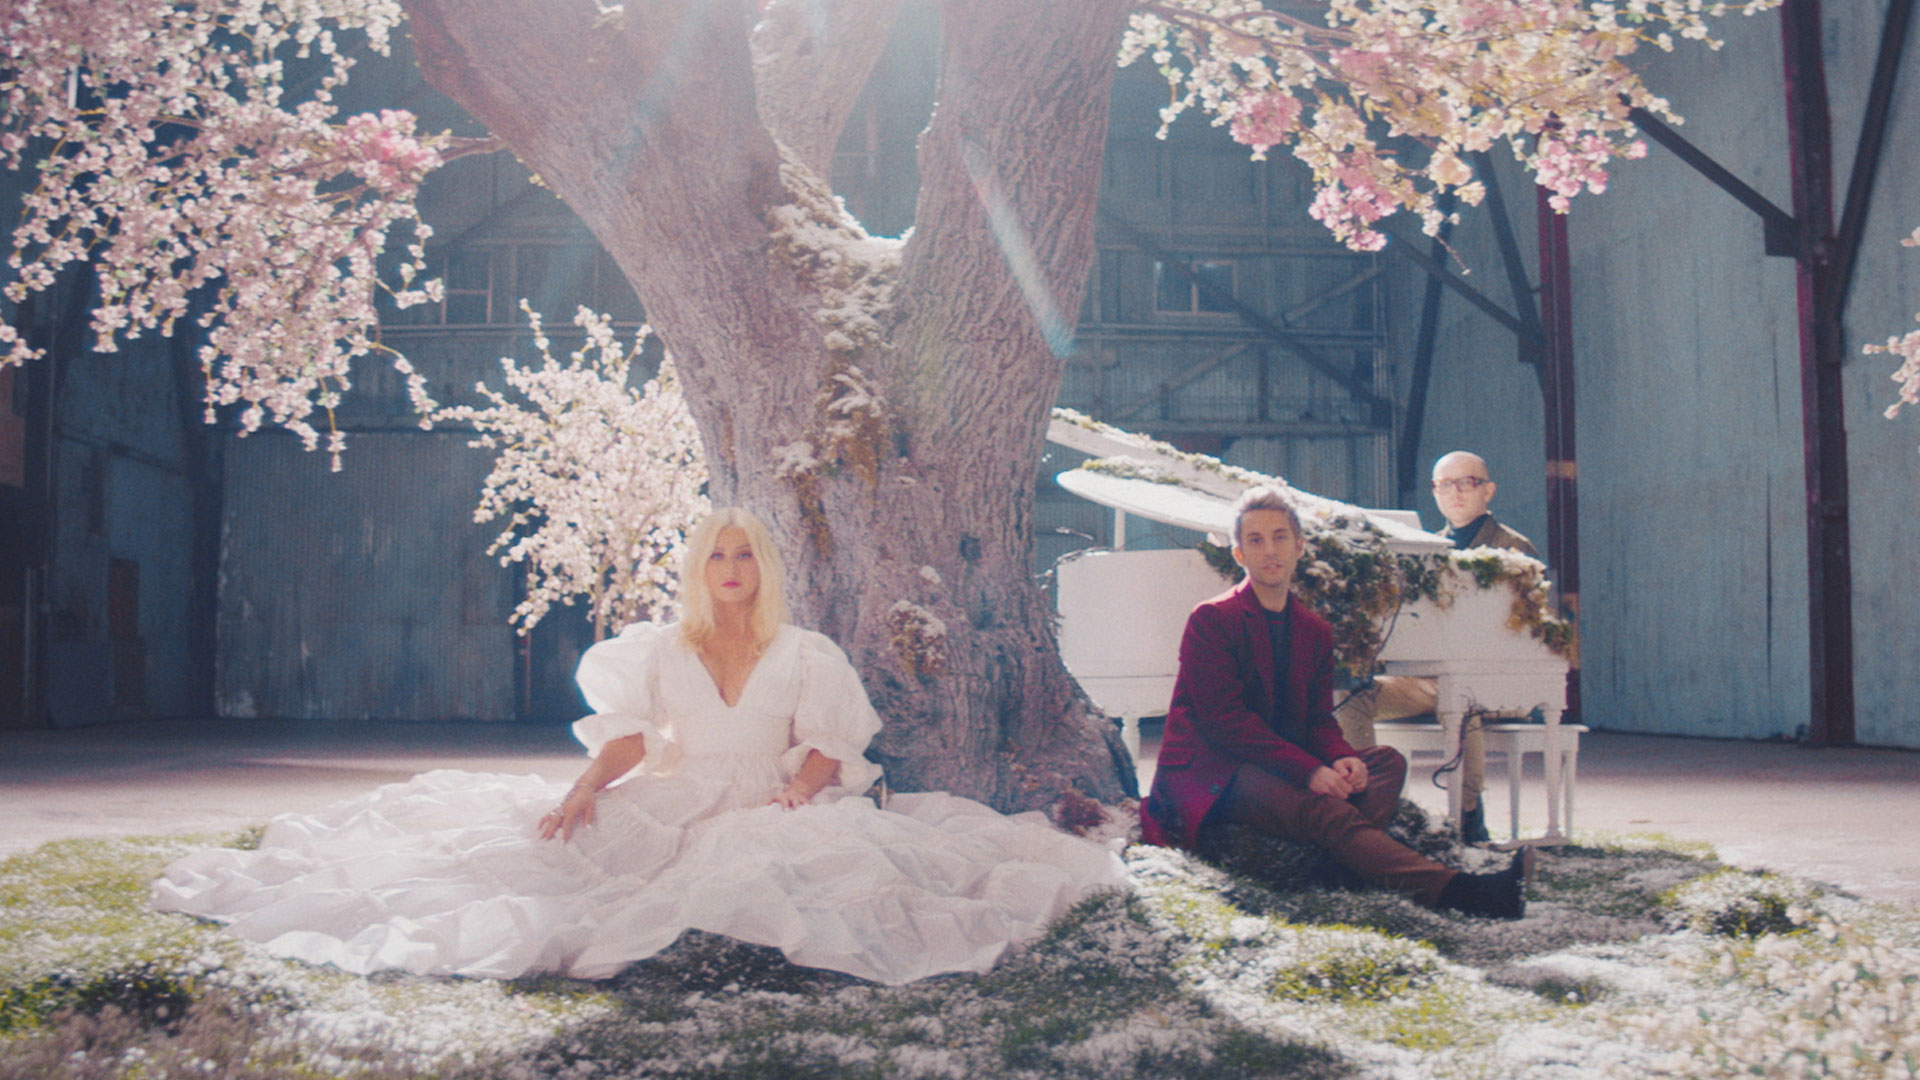 Christina Aguilera and A Great Big World sit underneath a blooming tree inside a large building